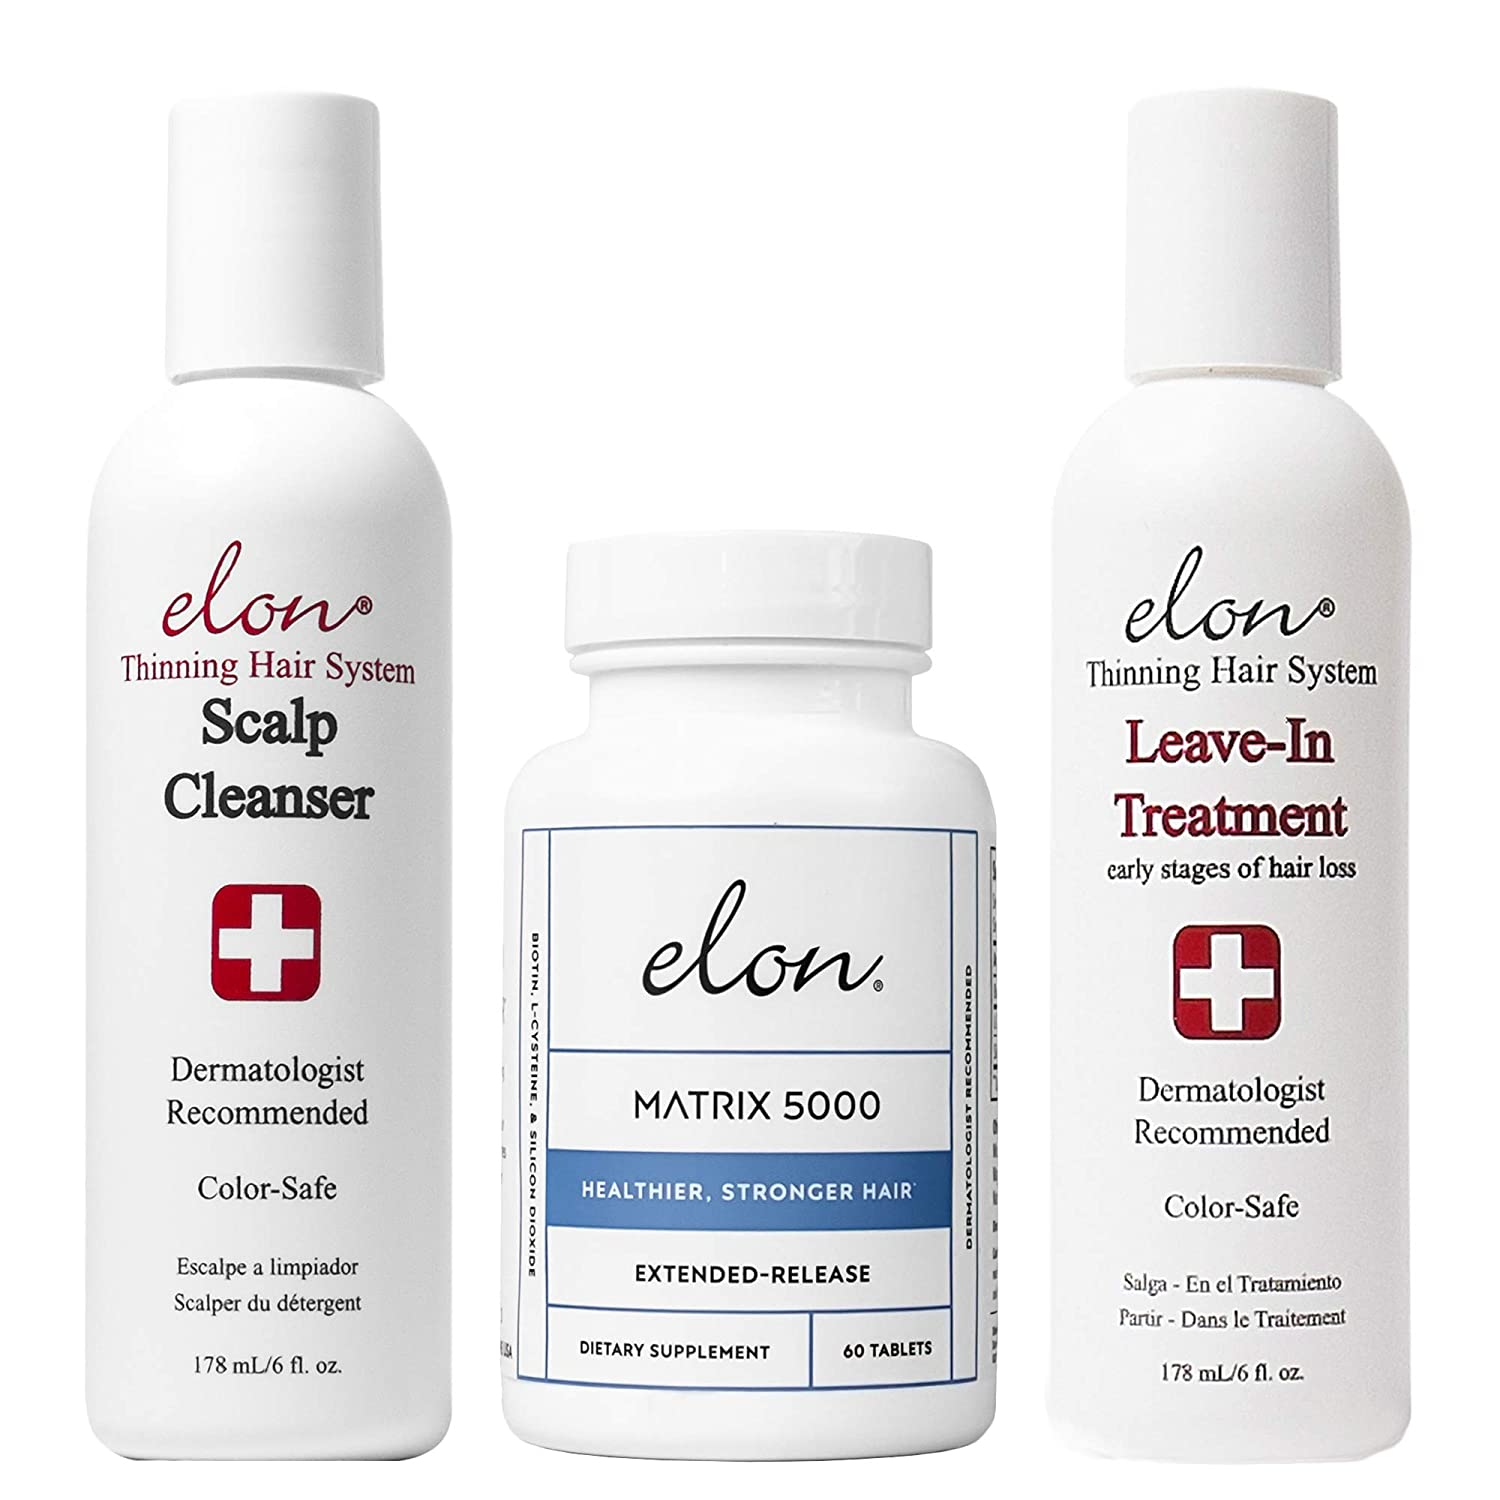 Elon Thinning Hair System for Early Hair Loss   Dermatologist Recommended   Elon Scalp Cleanser, Elon Leave-In Treatment & Elon Matrix 5000 Hair Vitamins (60 tablets)